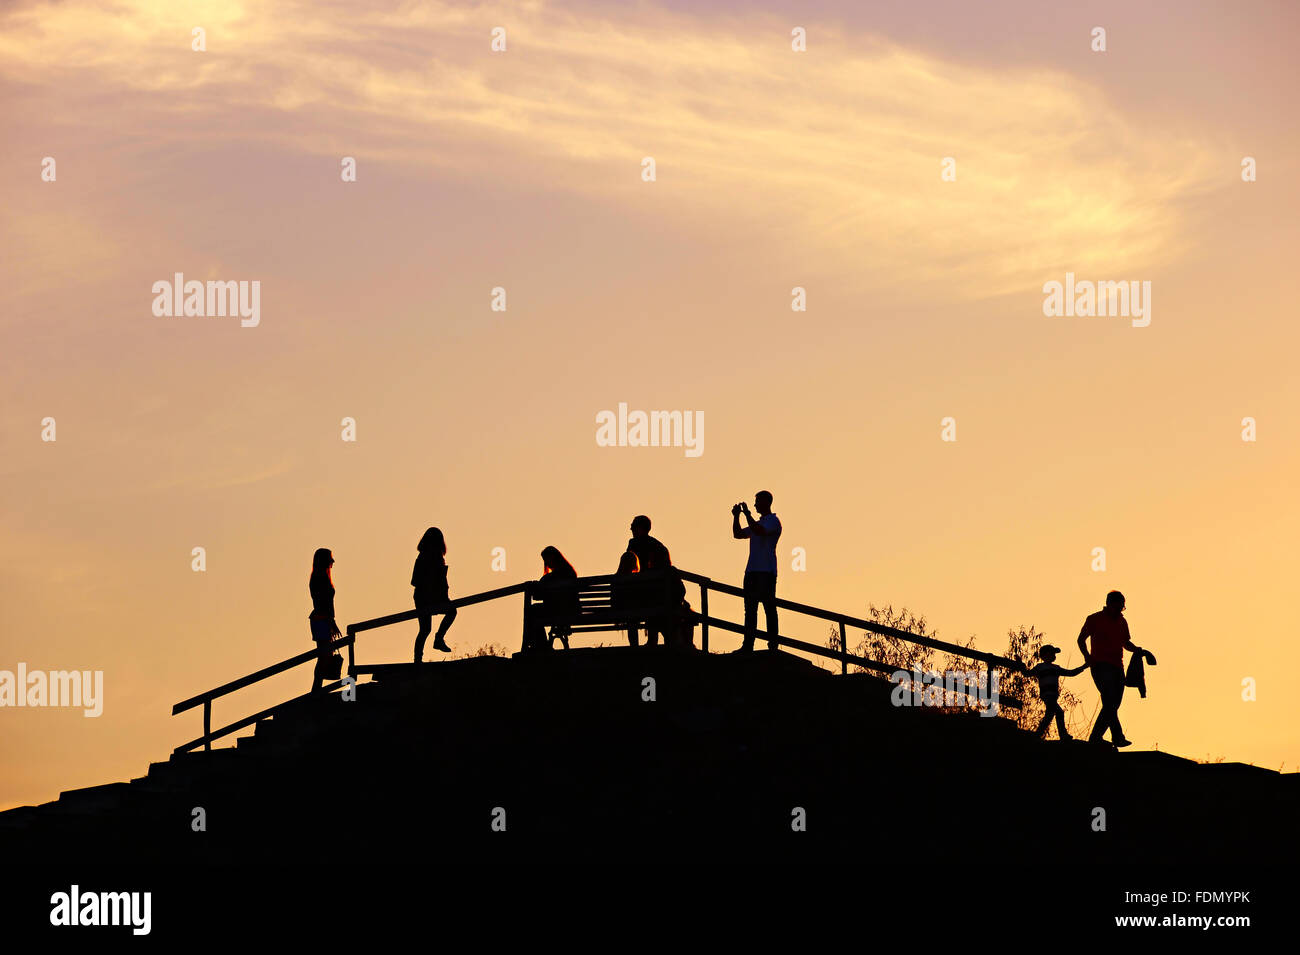 Silhouette of a people on a hill viewpoint at sunset - Stock Image